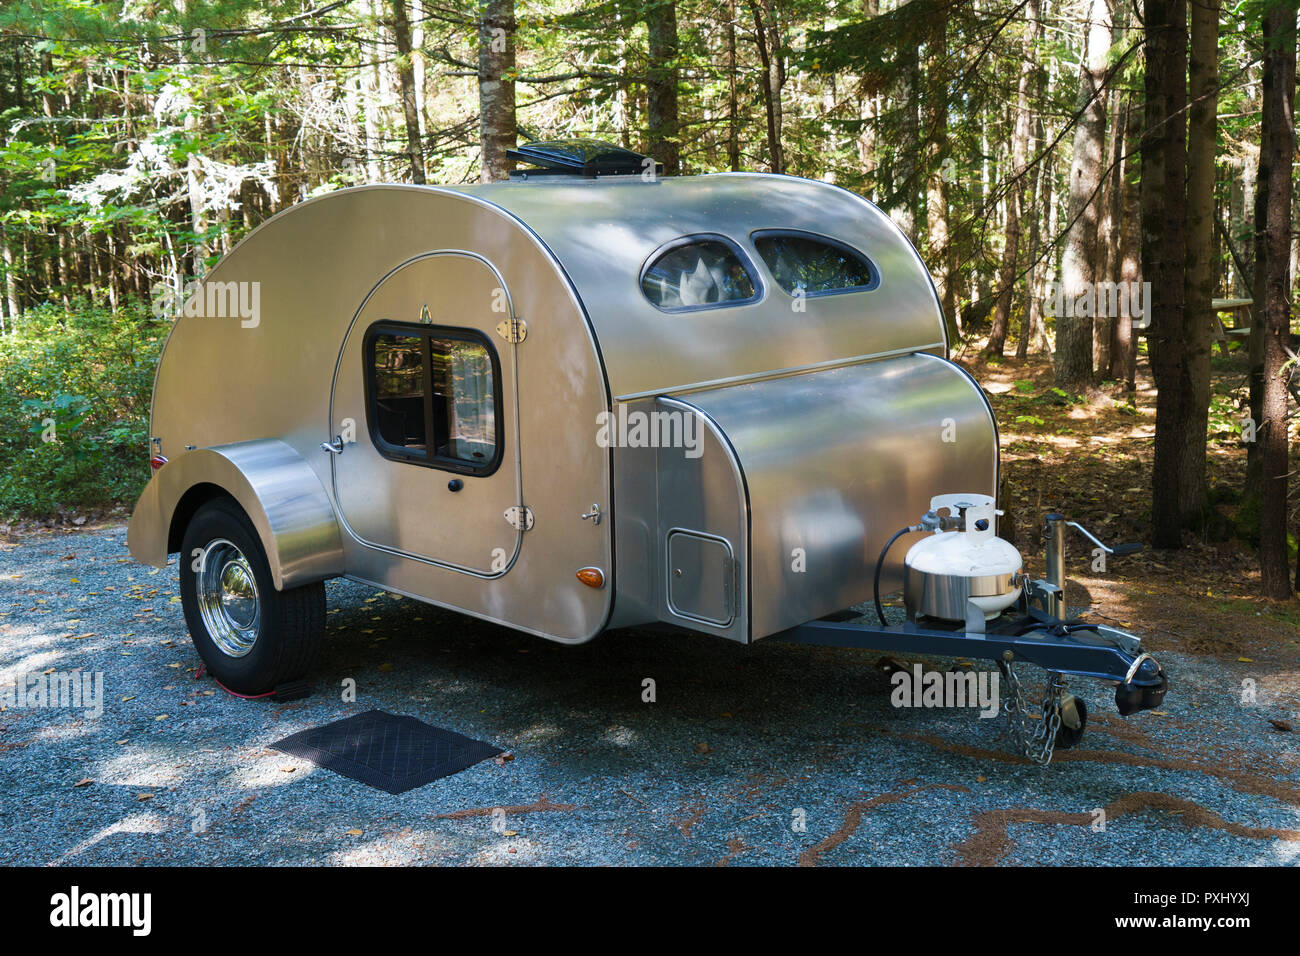 Teardrop Trailer Stock Photos & Teardrop Trailer Stock